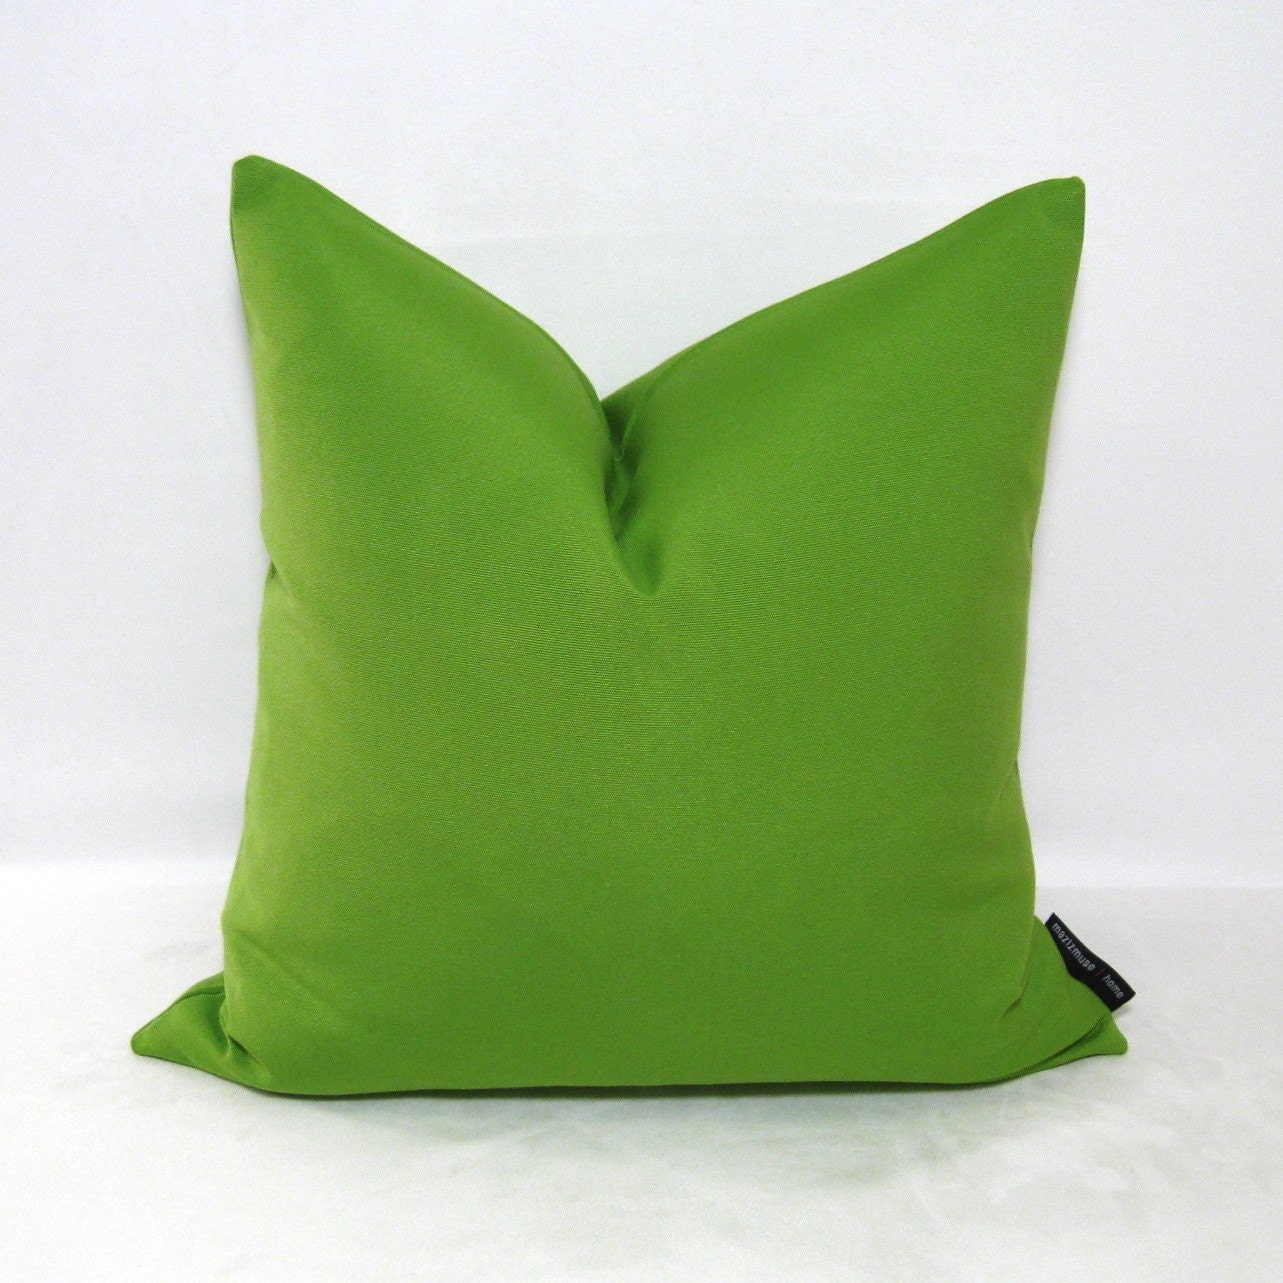 Decorative Pillows In Green : Green Pillow Cover Decorative Cushion Outdoor by Mazizmuse